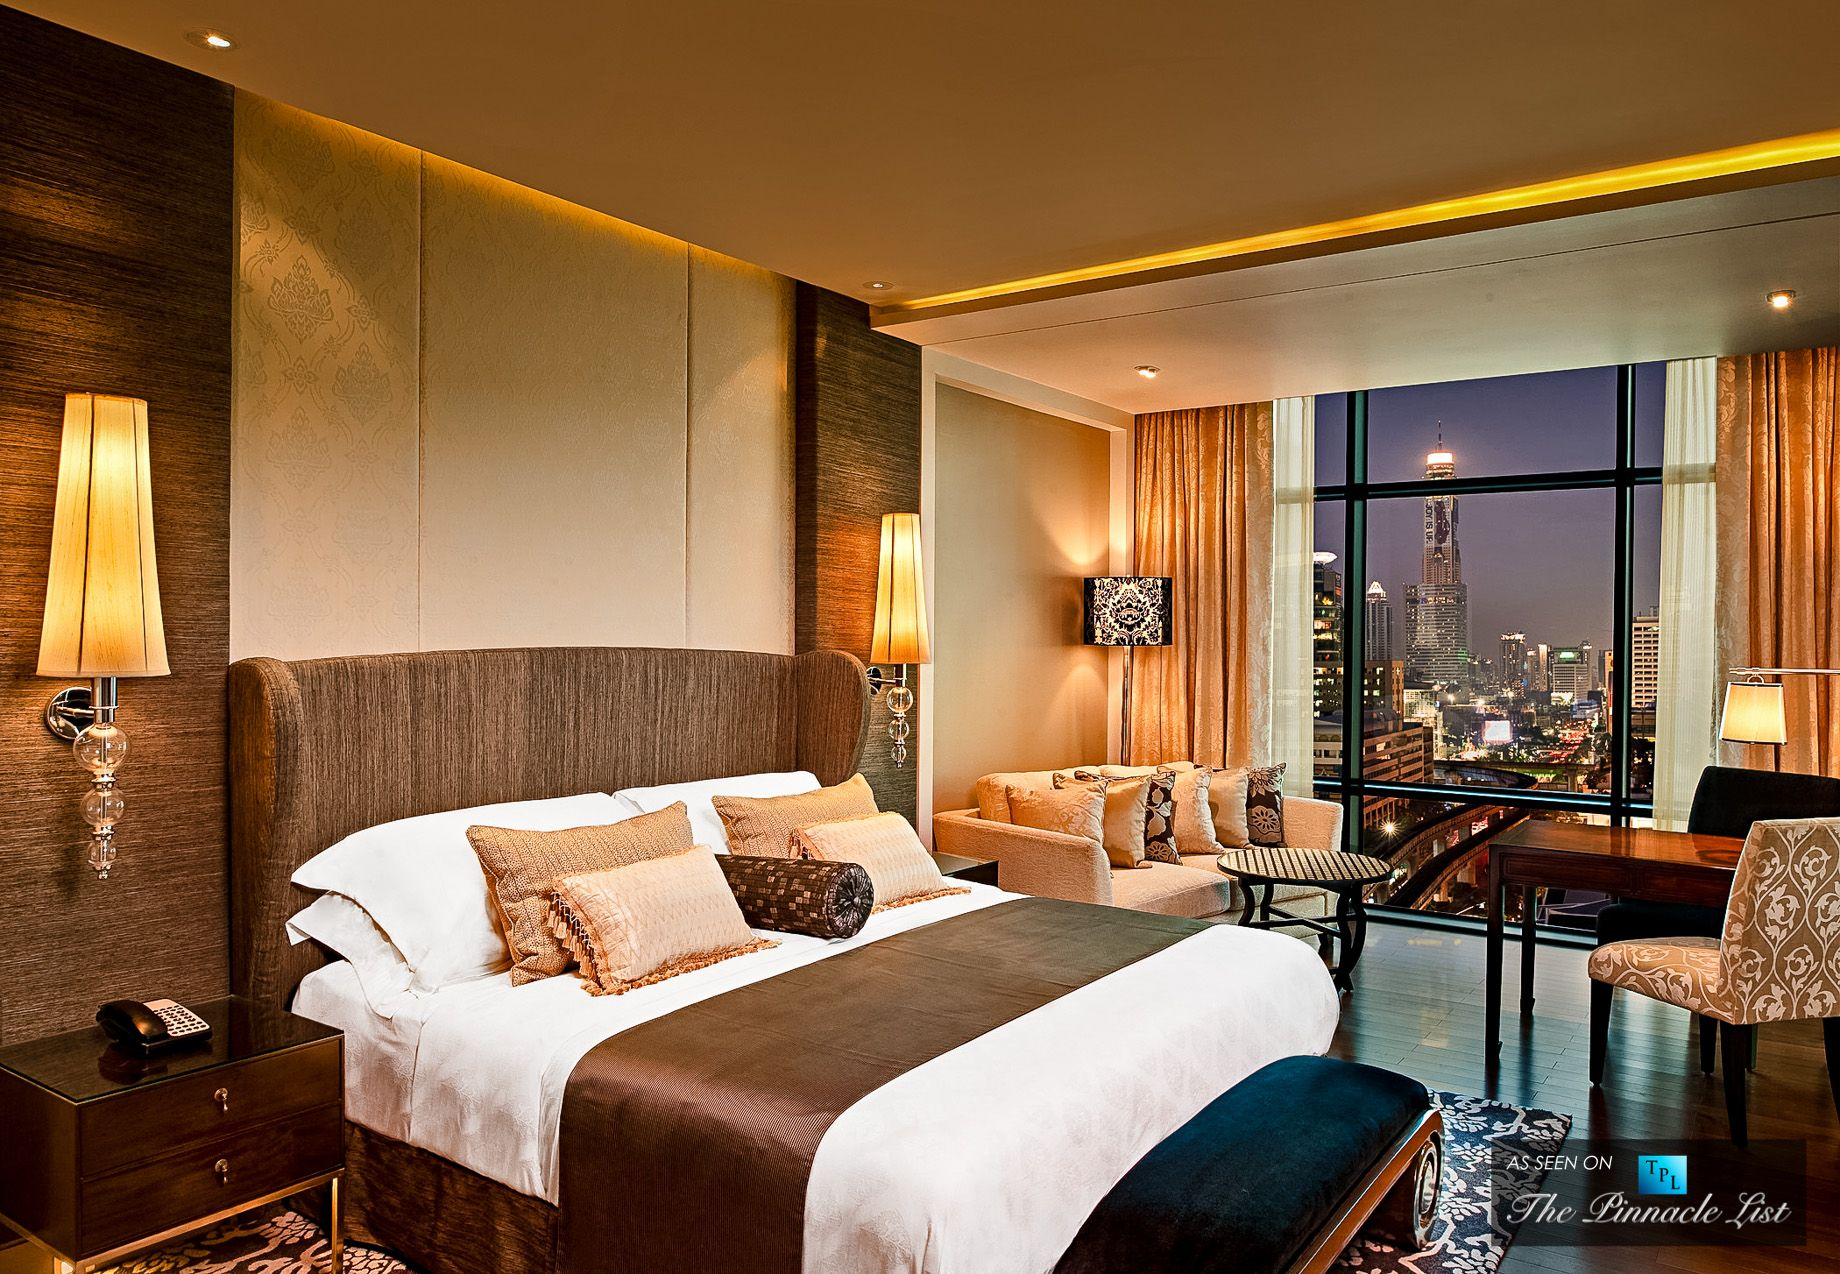 St regis luxury hotel bangkok thailand grand deluxe for Most luxurious boutique hotels in the world